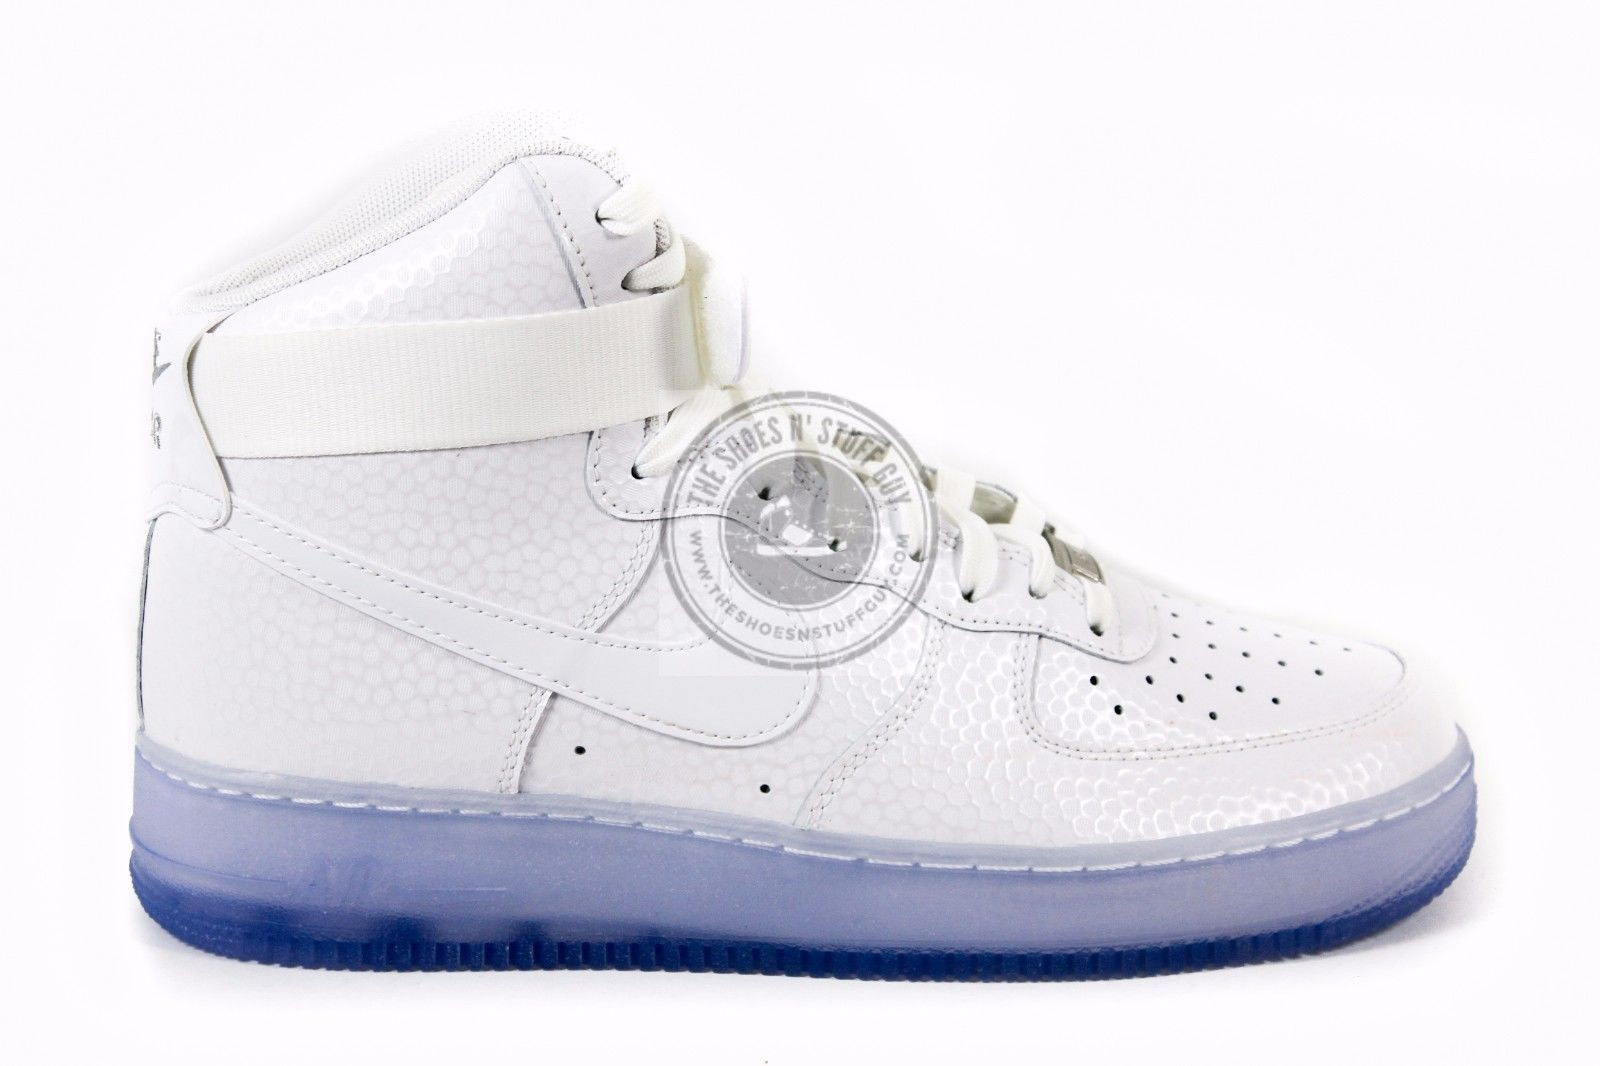 big sale 4a1f1 f9fd9 New Women s Nike Air Force 1 HI PRM Athletic Sneakers 654440 101 White Size  11